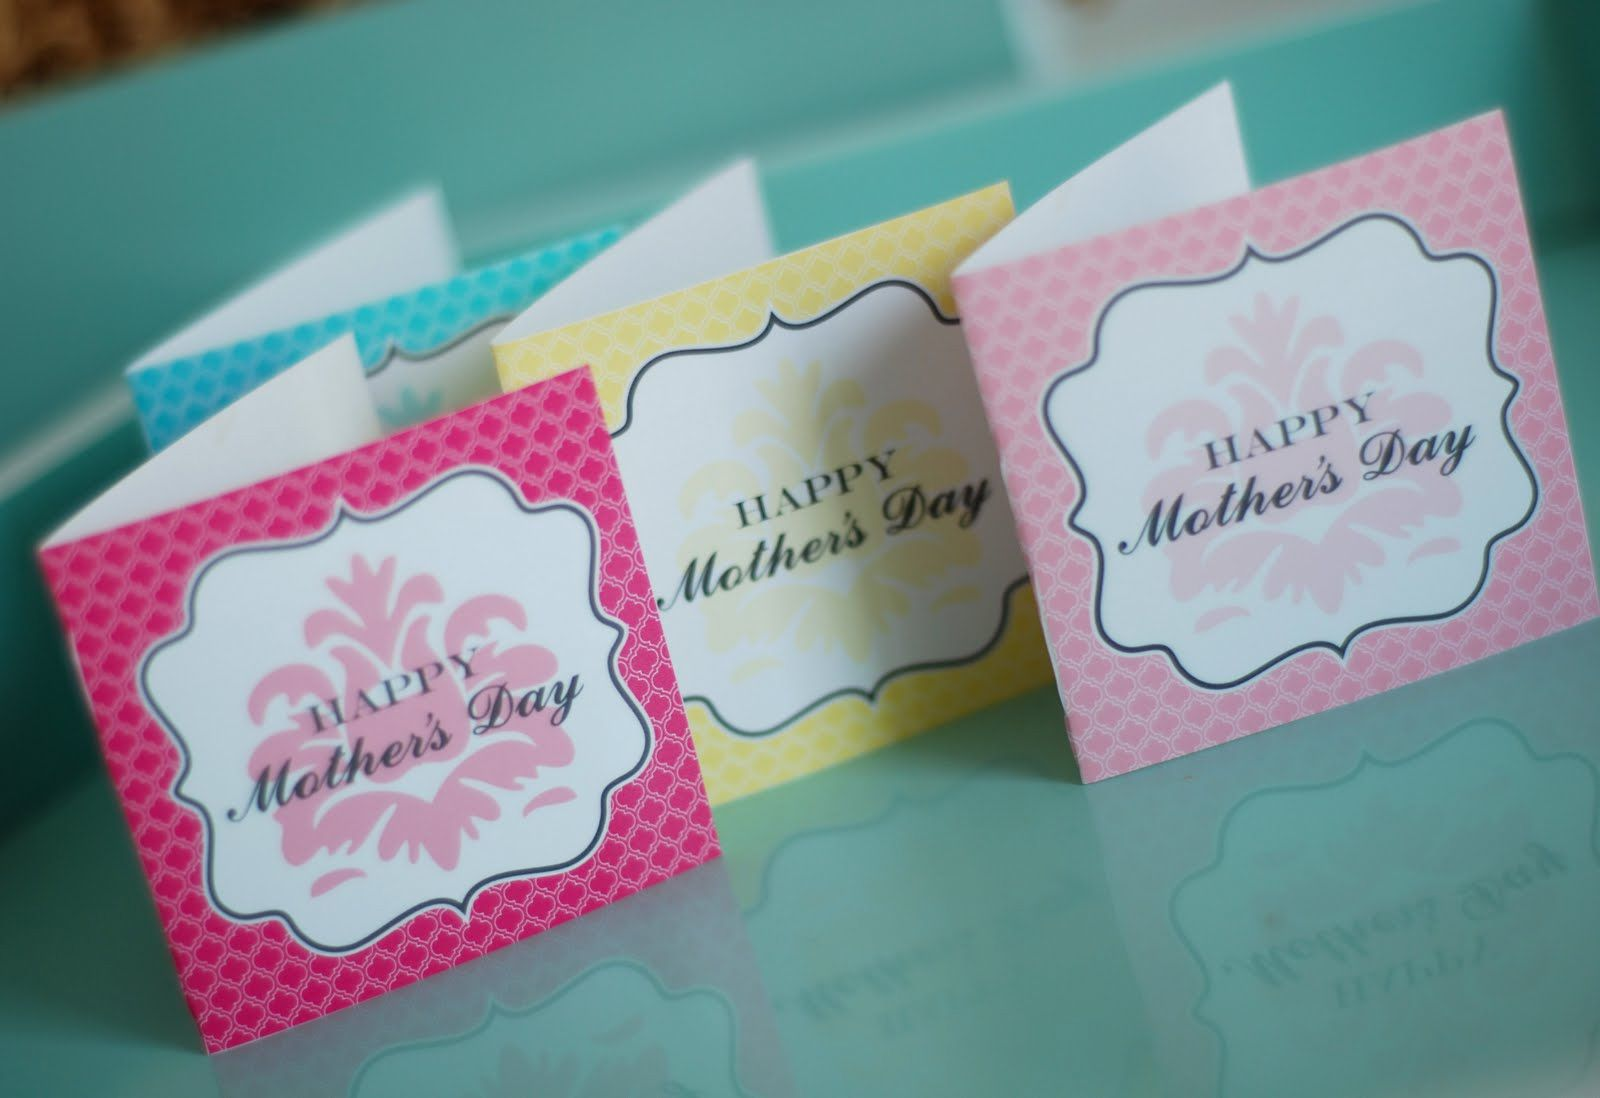 Colorful miniature Mother's Day cards on a table